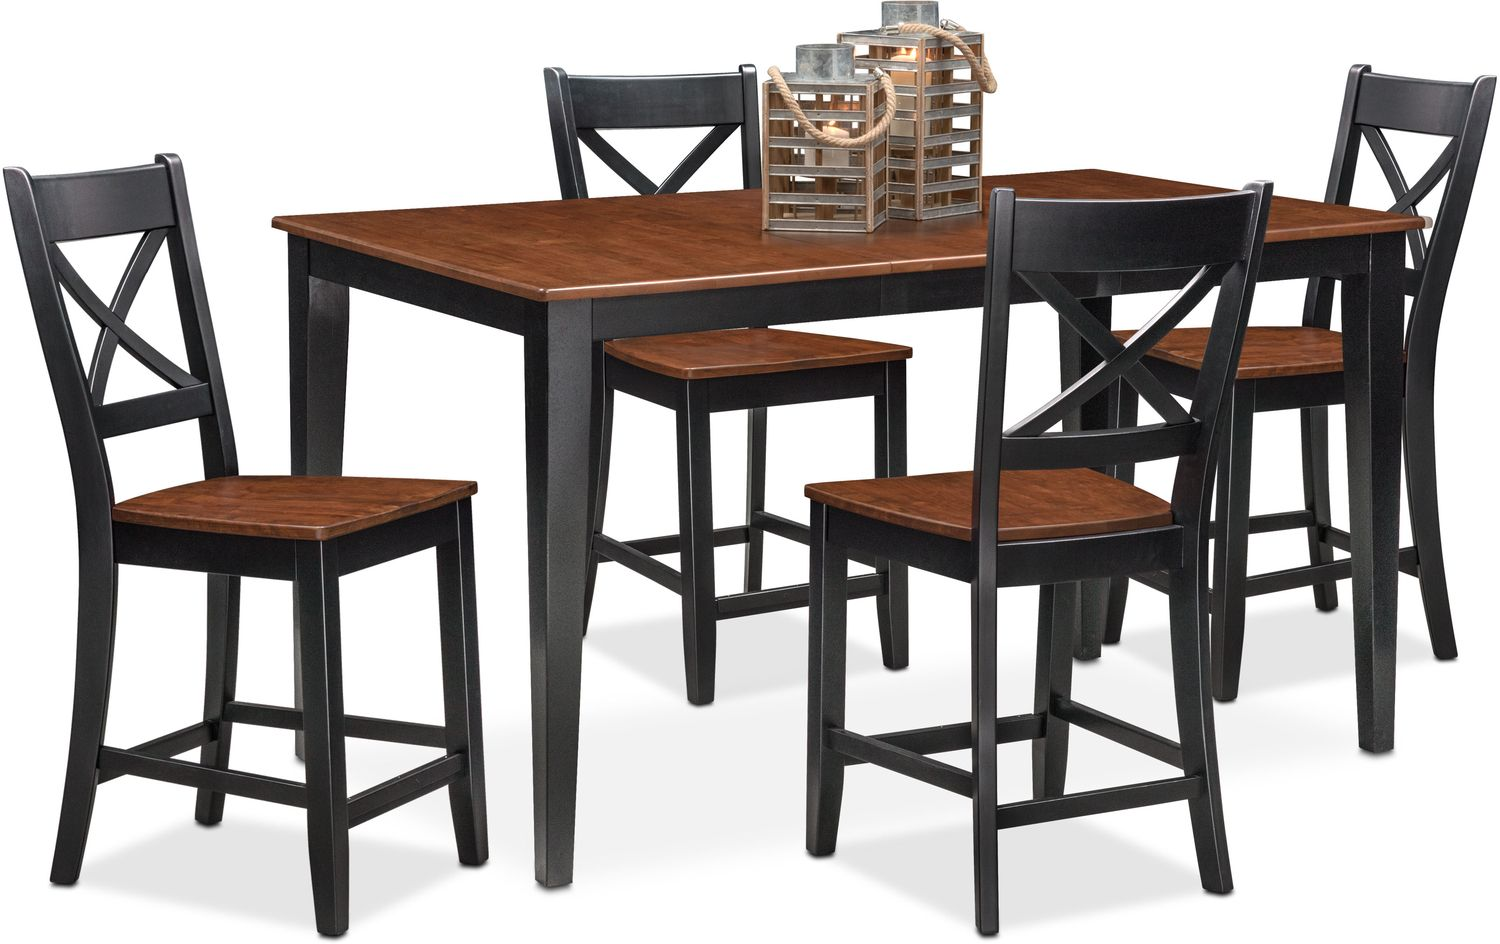 tall dining chairs anti gravity lawn chair nantucket counter height table and 4 side black